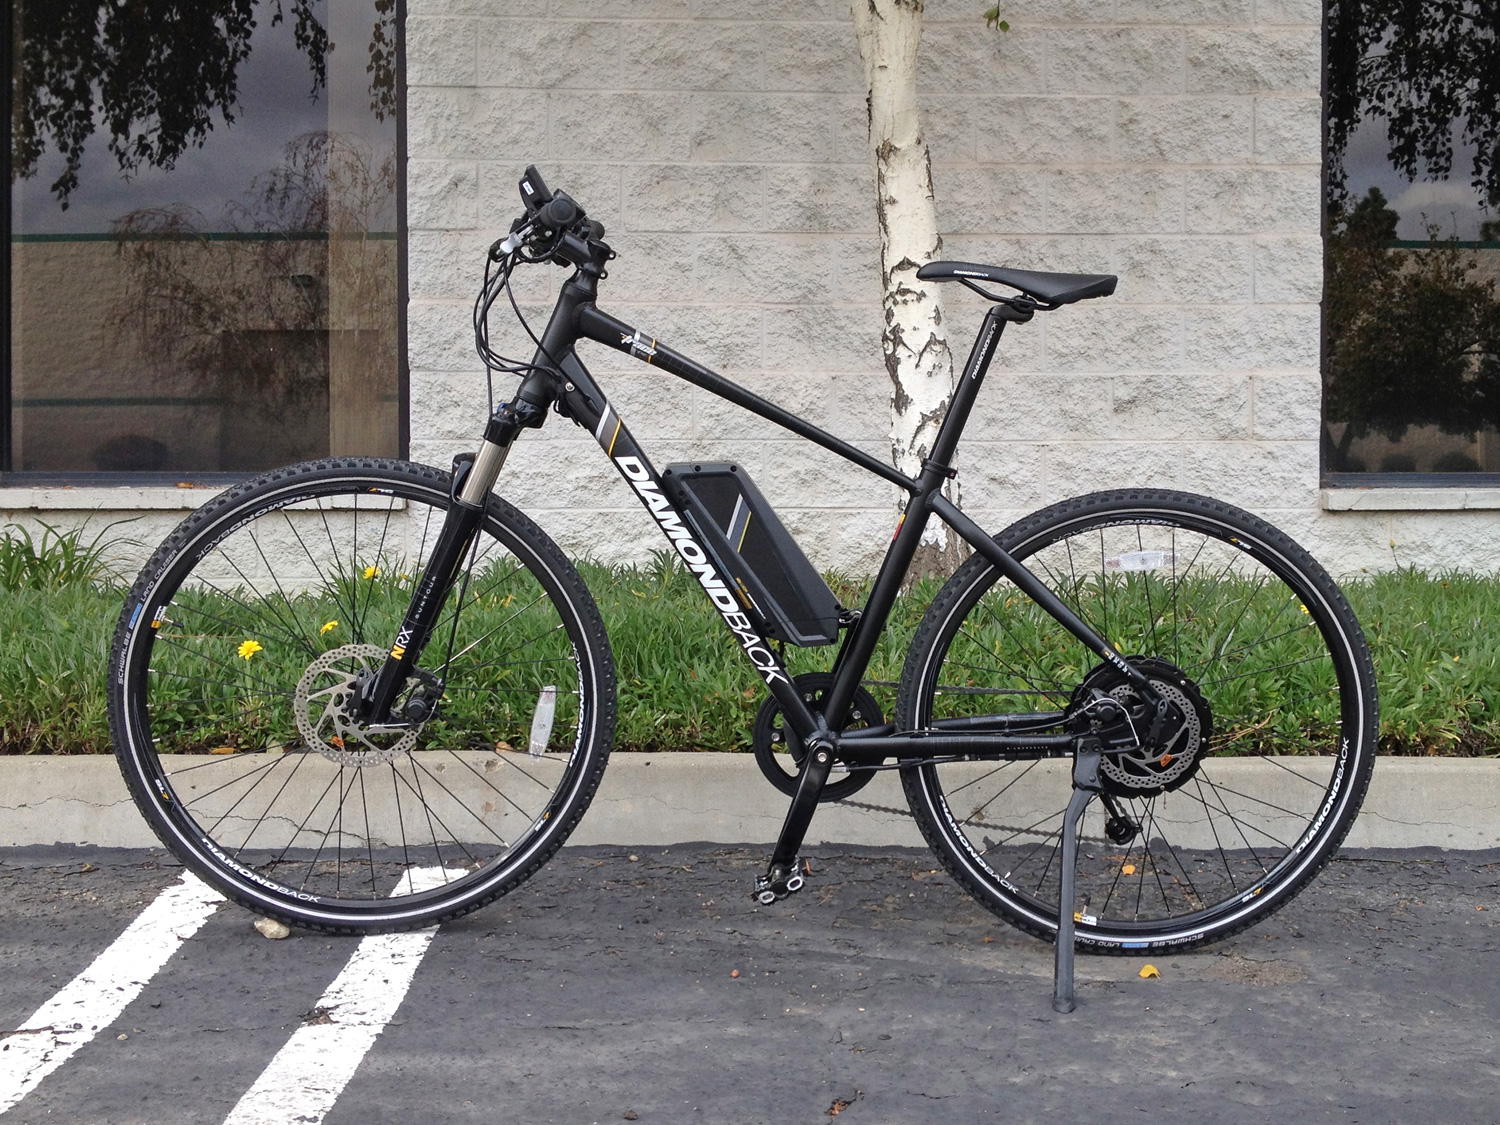 Bikes With Motors That Go Up To 20 Mph The motor driving this ebike